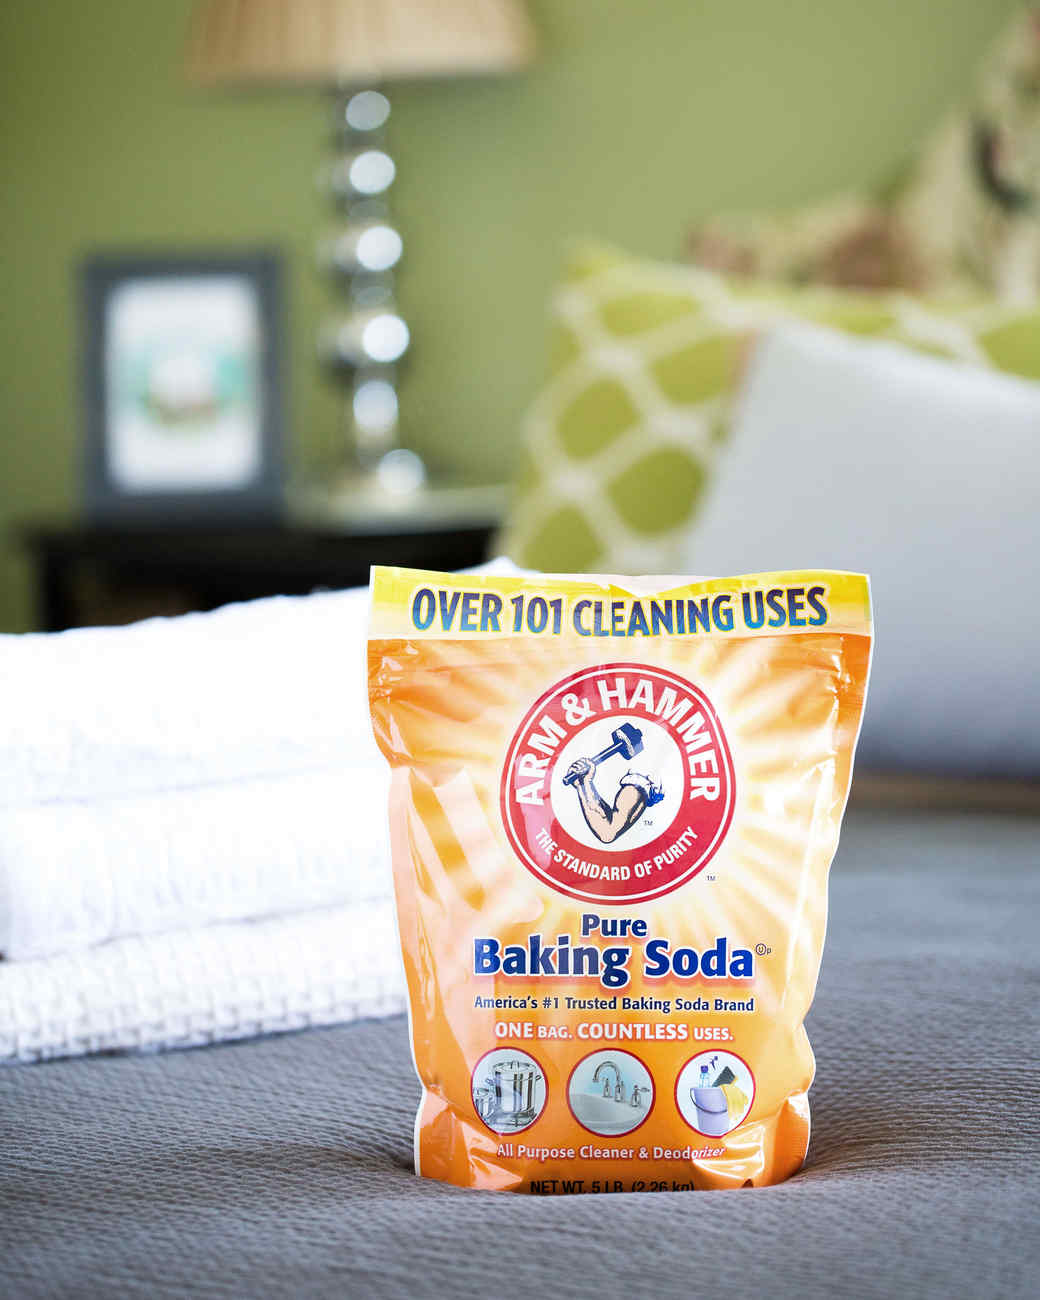 how-to-freshen-baking-soda-0316.jpg